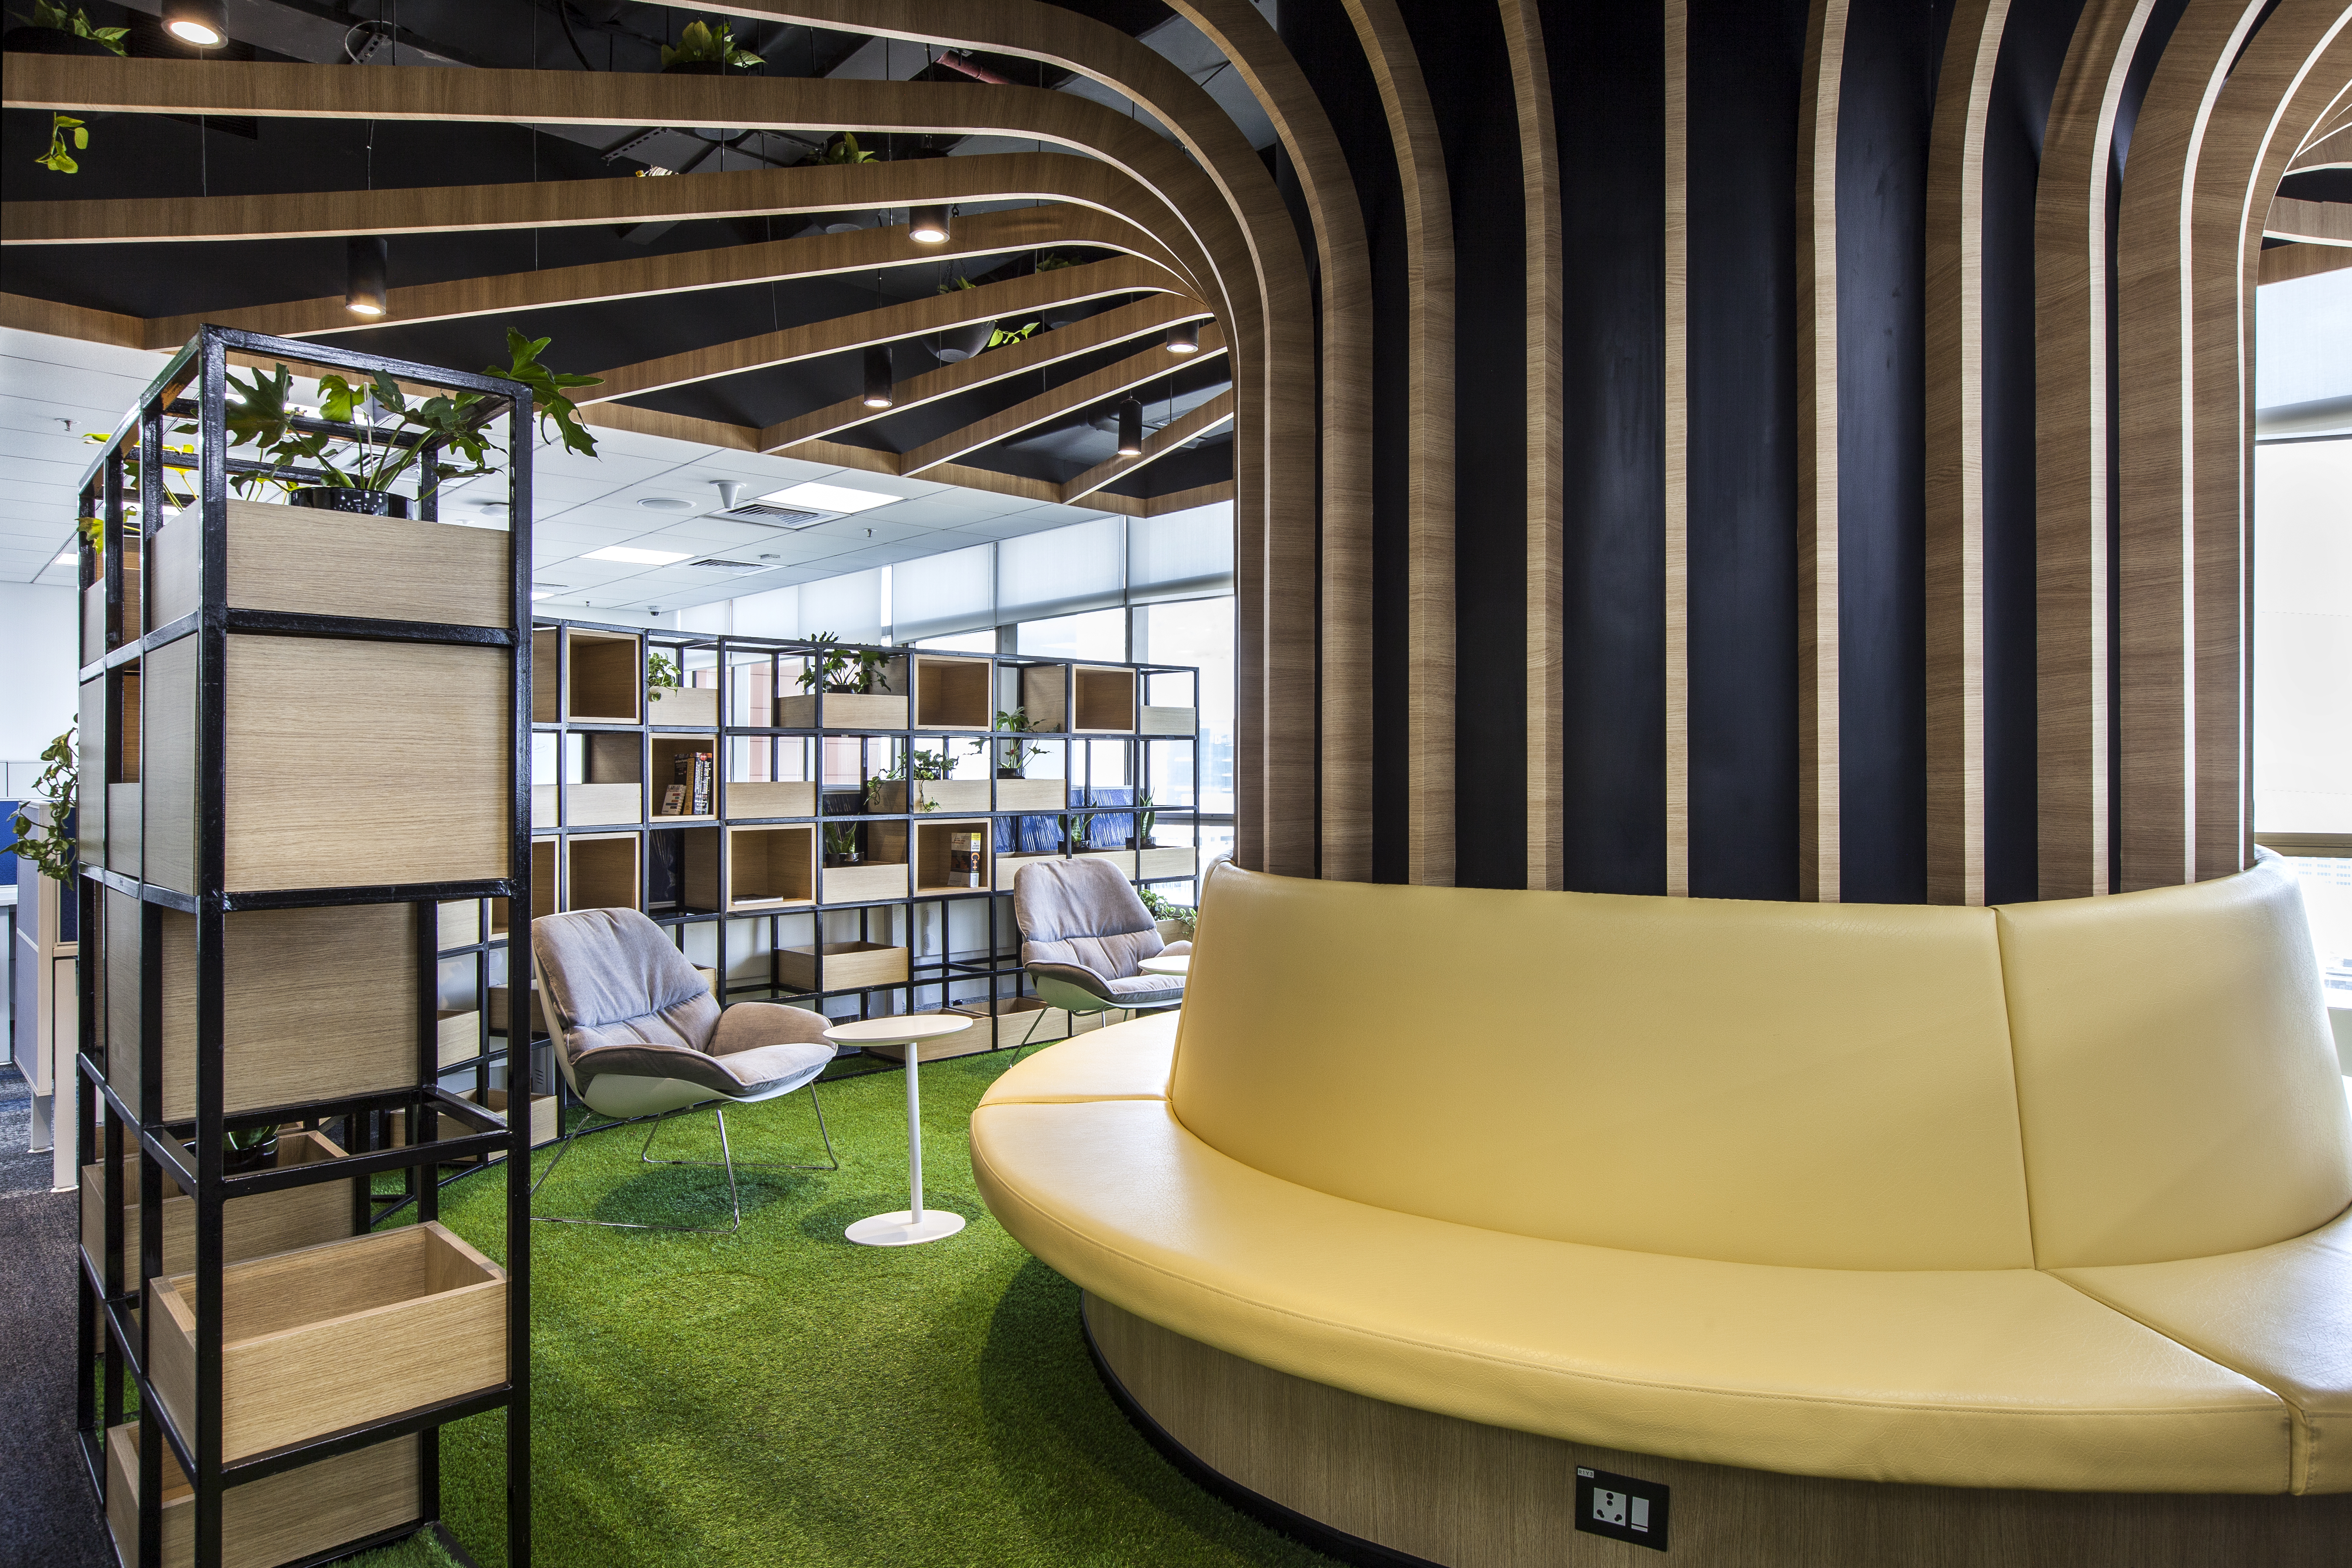 This pharma office designed its workspace to cater to the needs of its different departments